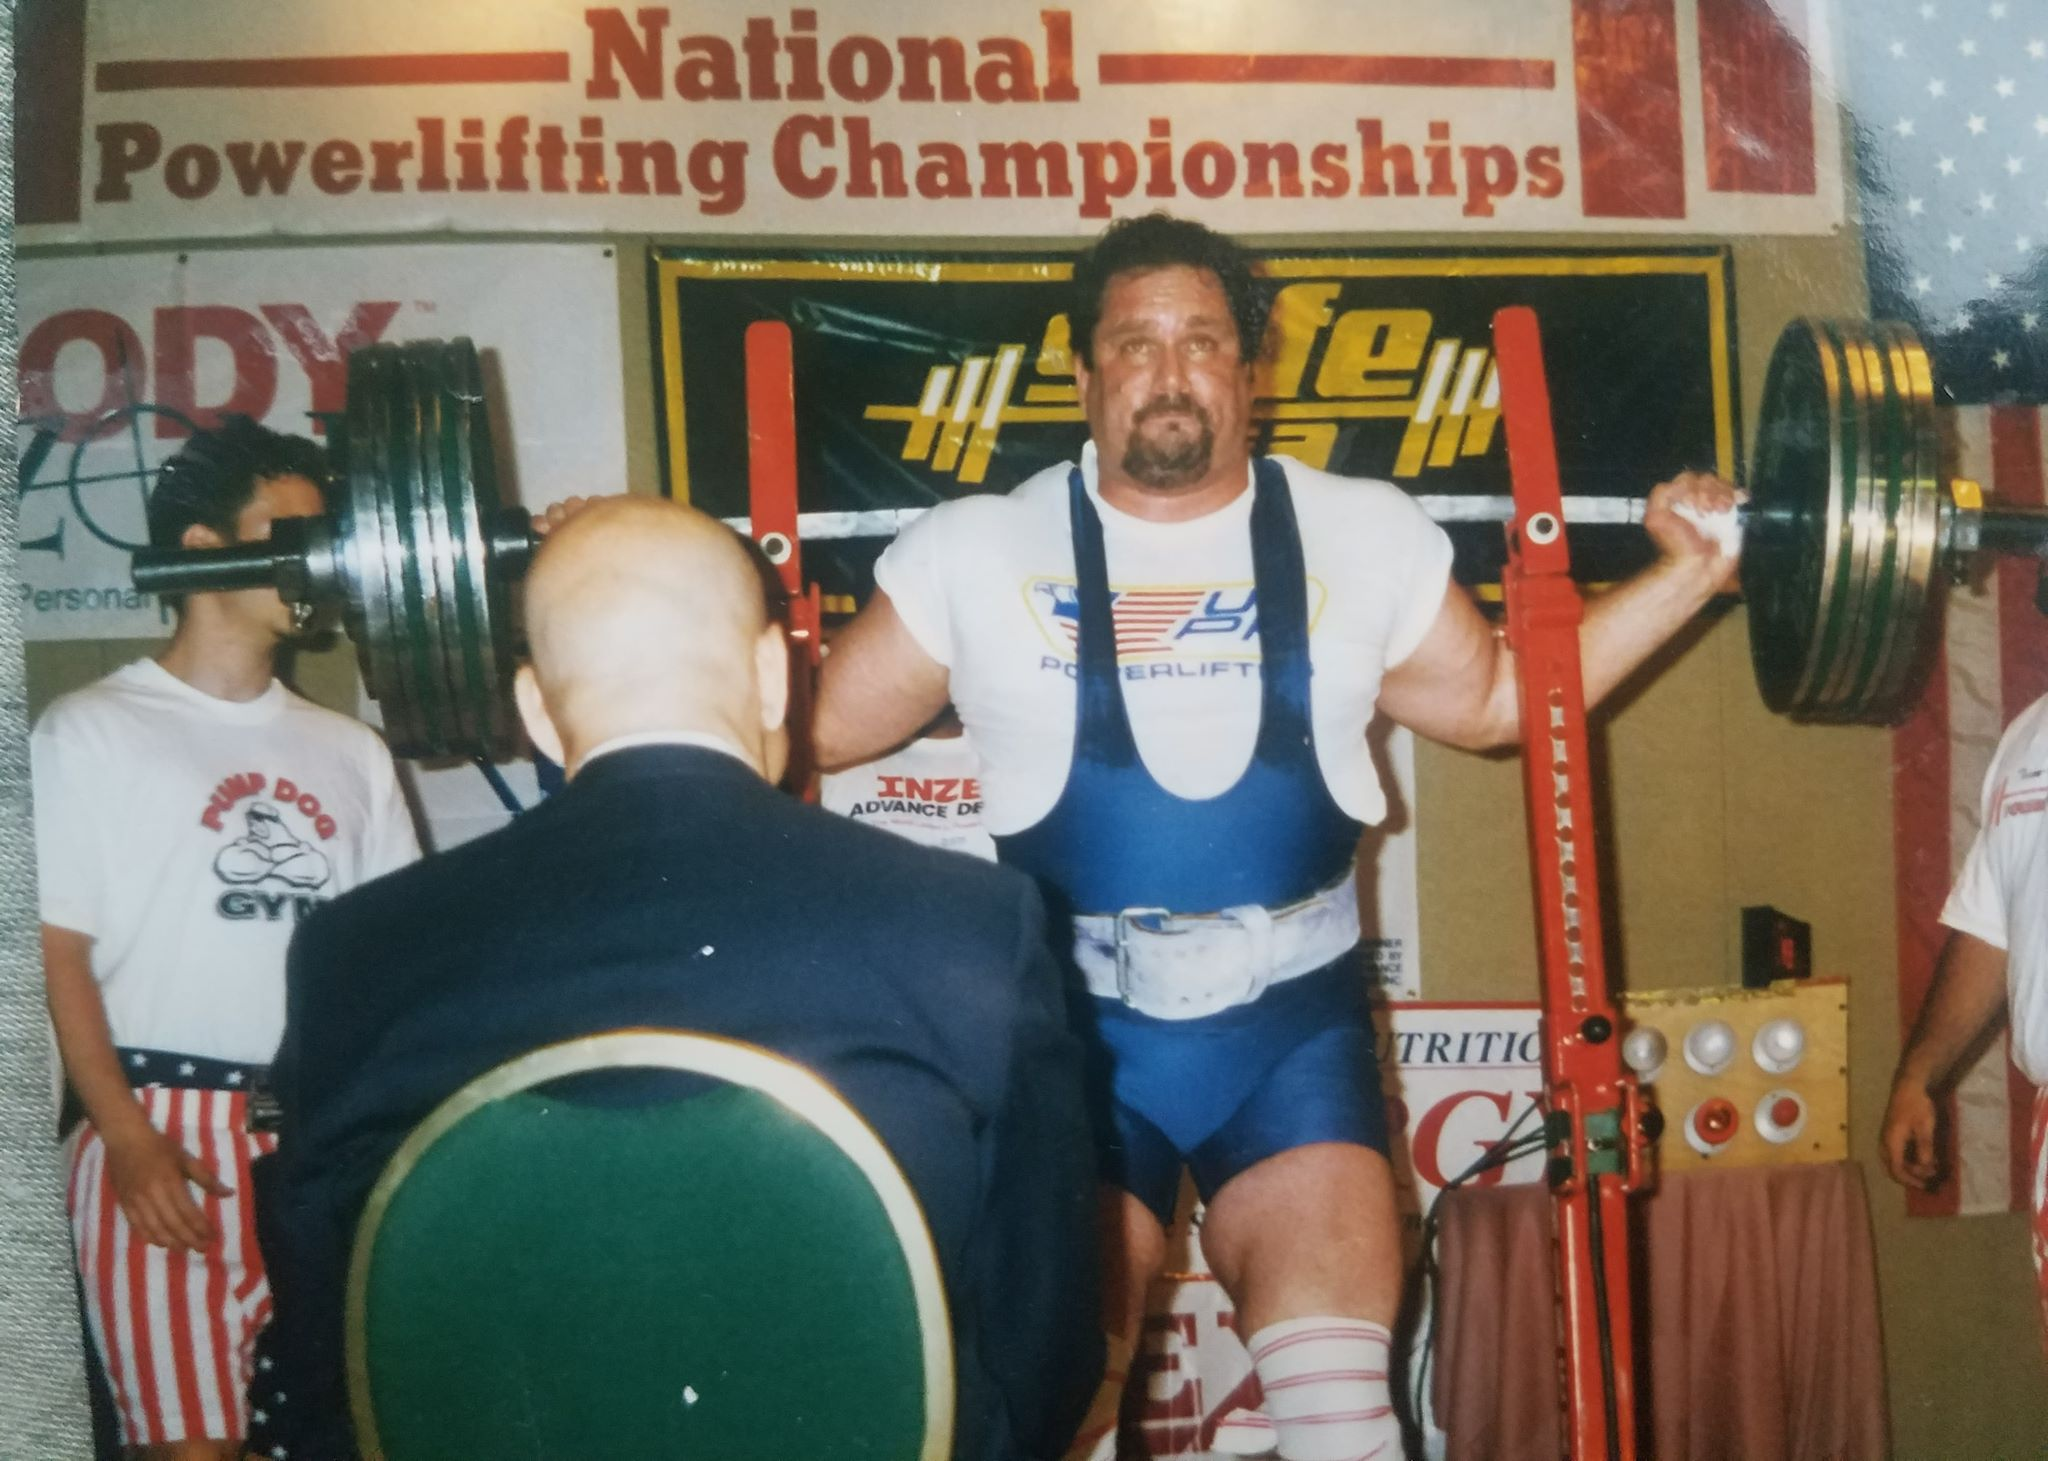 The Parade - A Barbell Squat Story